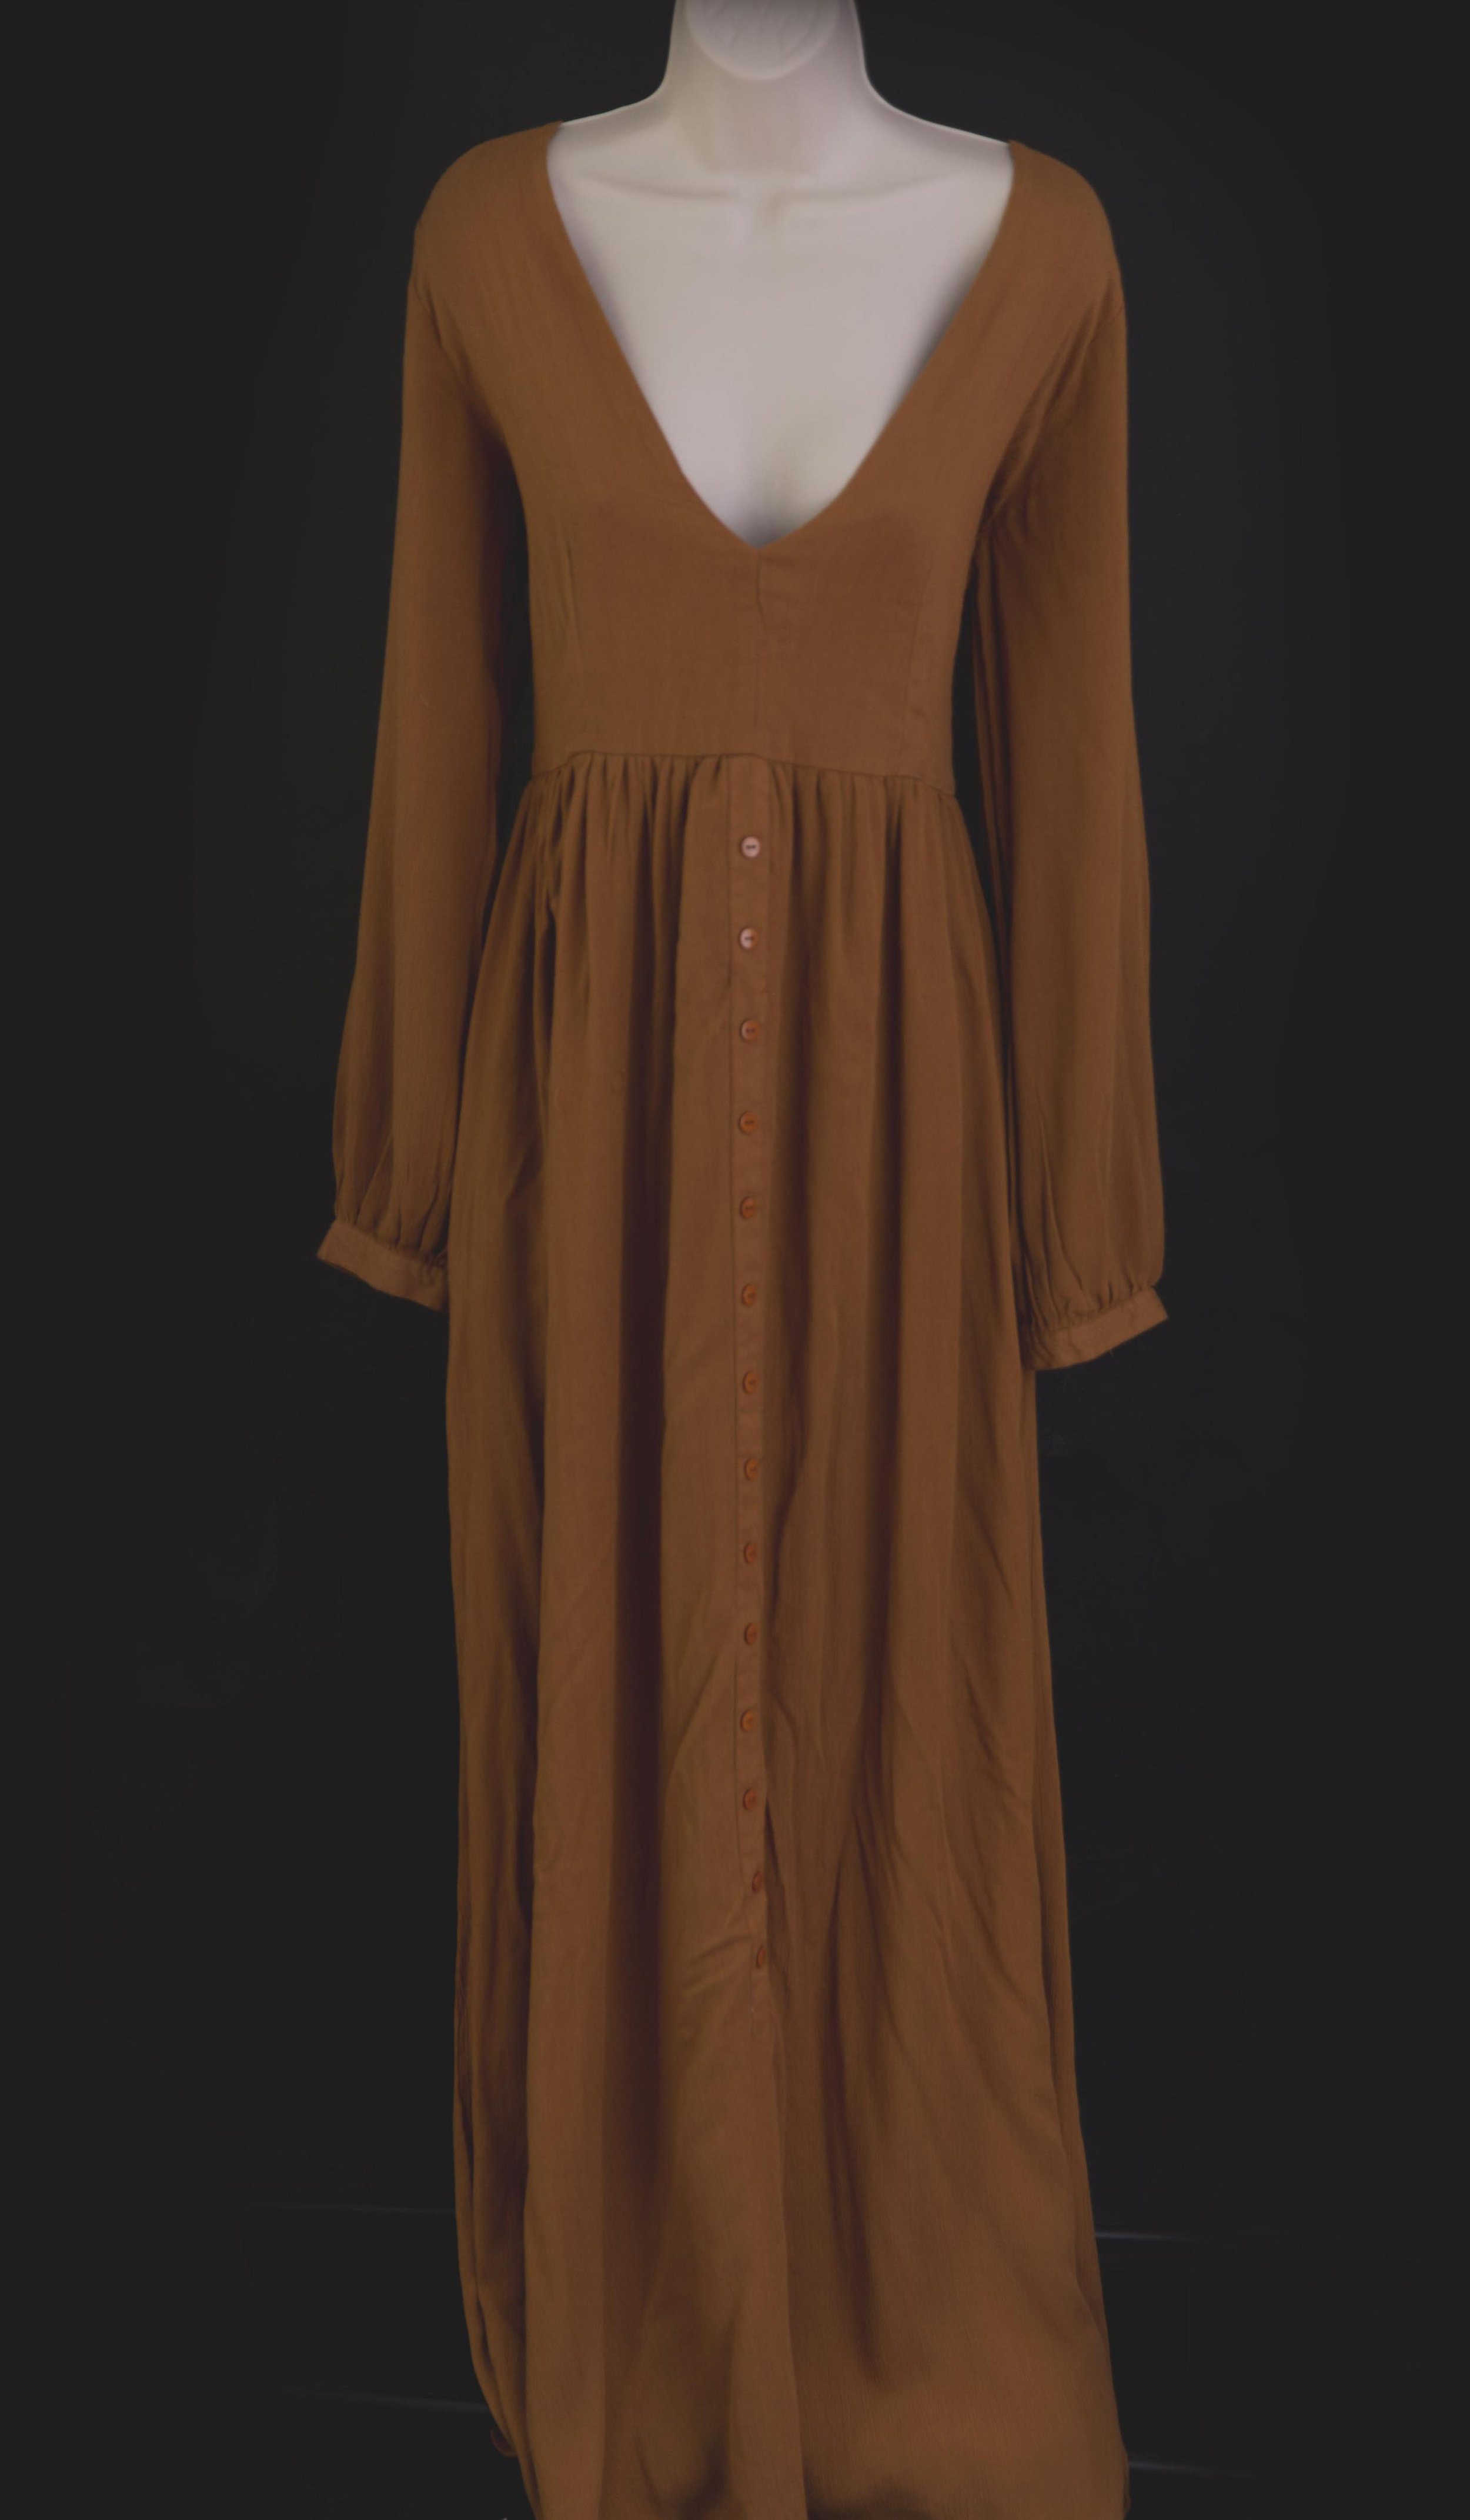 Faria - LargeFor the mom looking for a boho feel. Pair it with a black fedora. Drooped over one shoulder, Field of tall brown grass or how amazing would this look against the colors of fall.